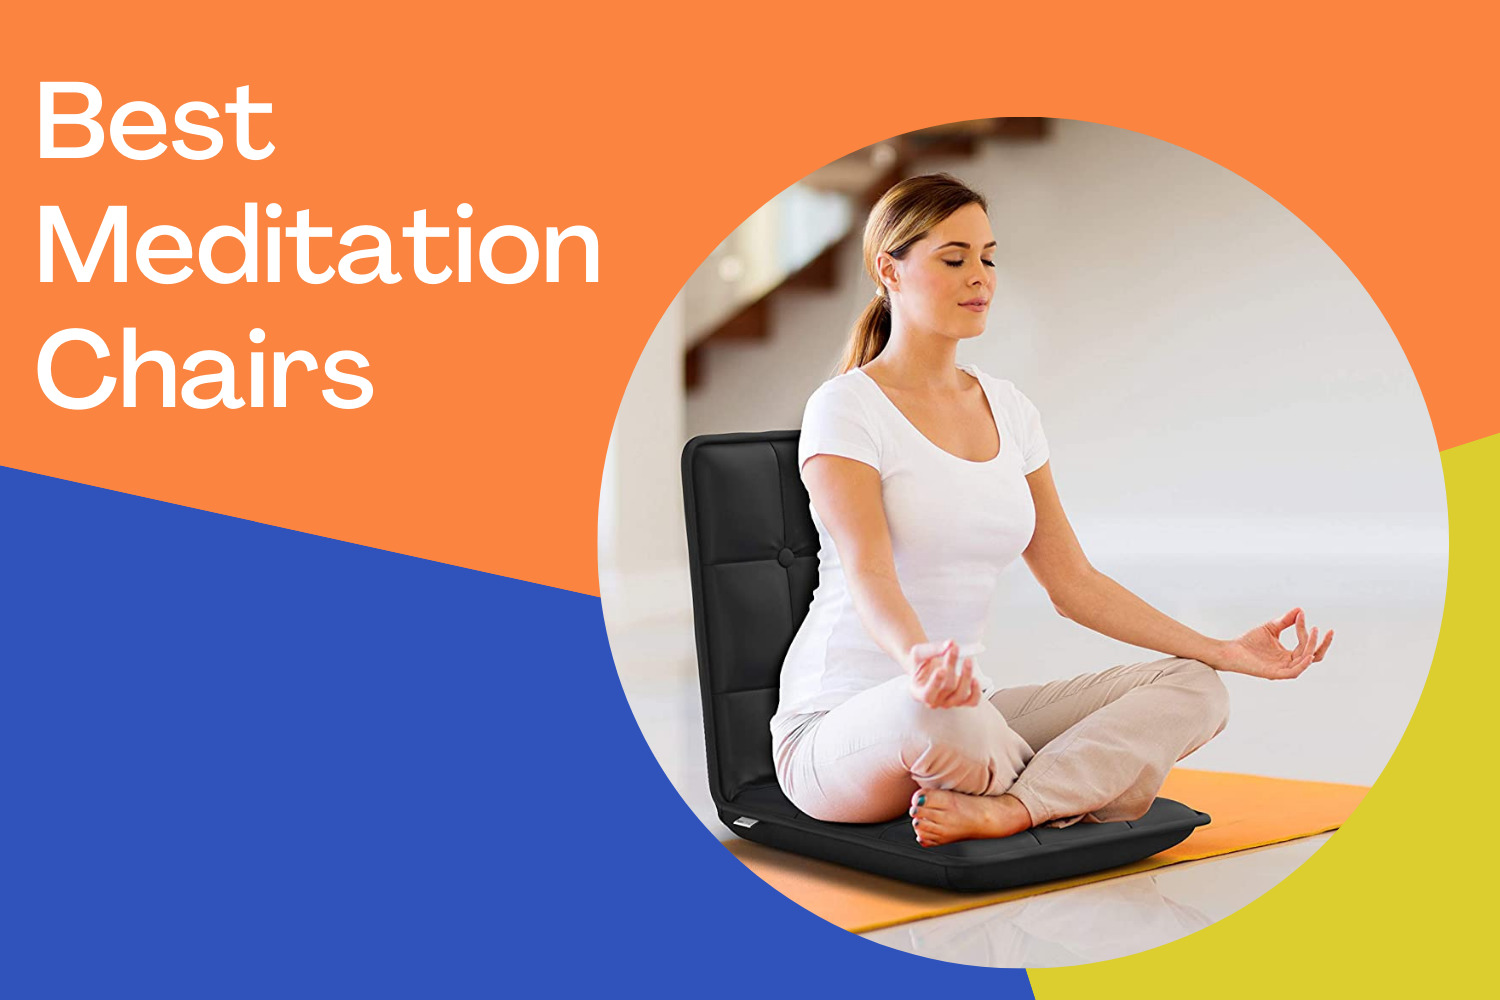 Best Meditation Chairs - Top 10 Chairs To Support Your Back And Knee